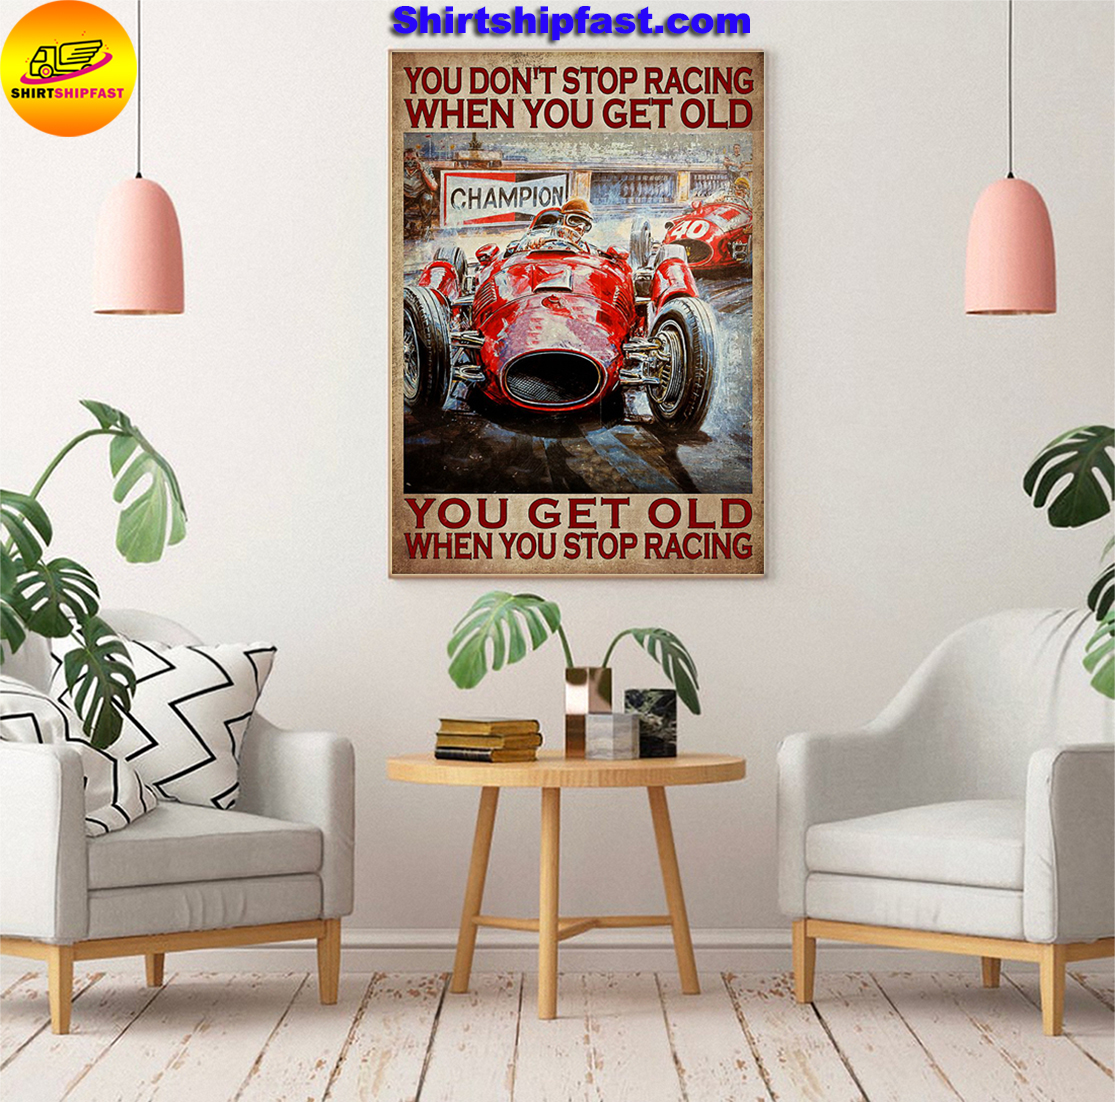 Drag racing You don't stop racing when you get old poster - Picture 3